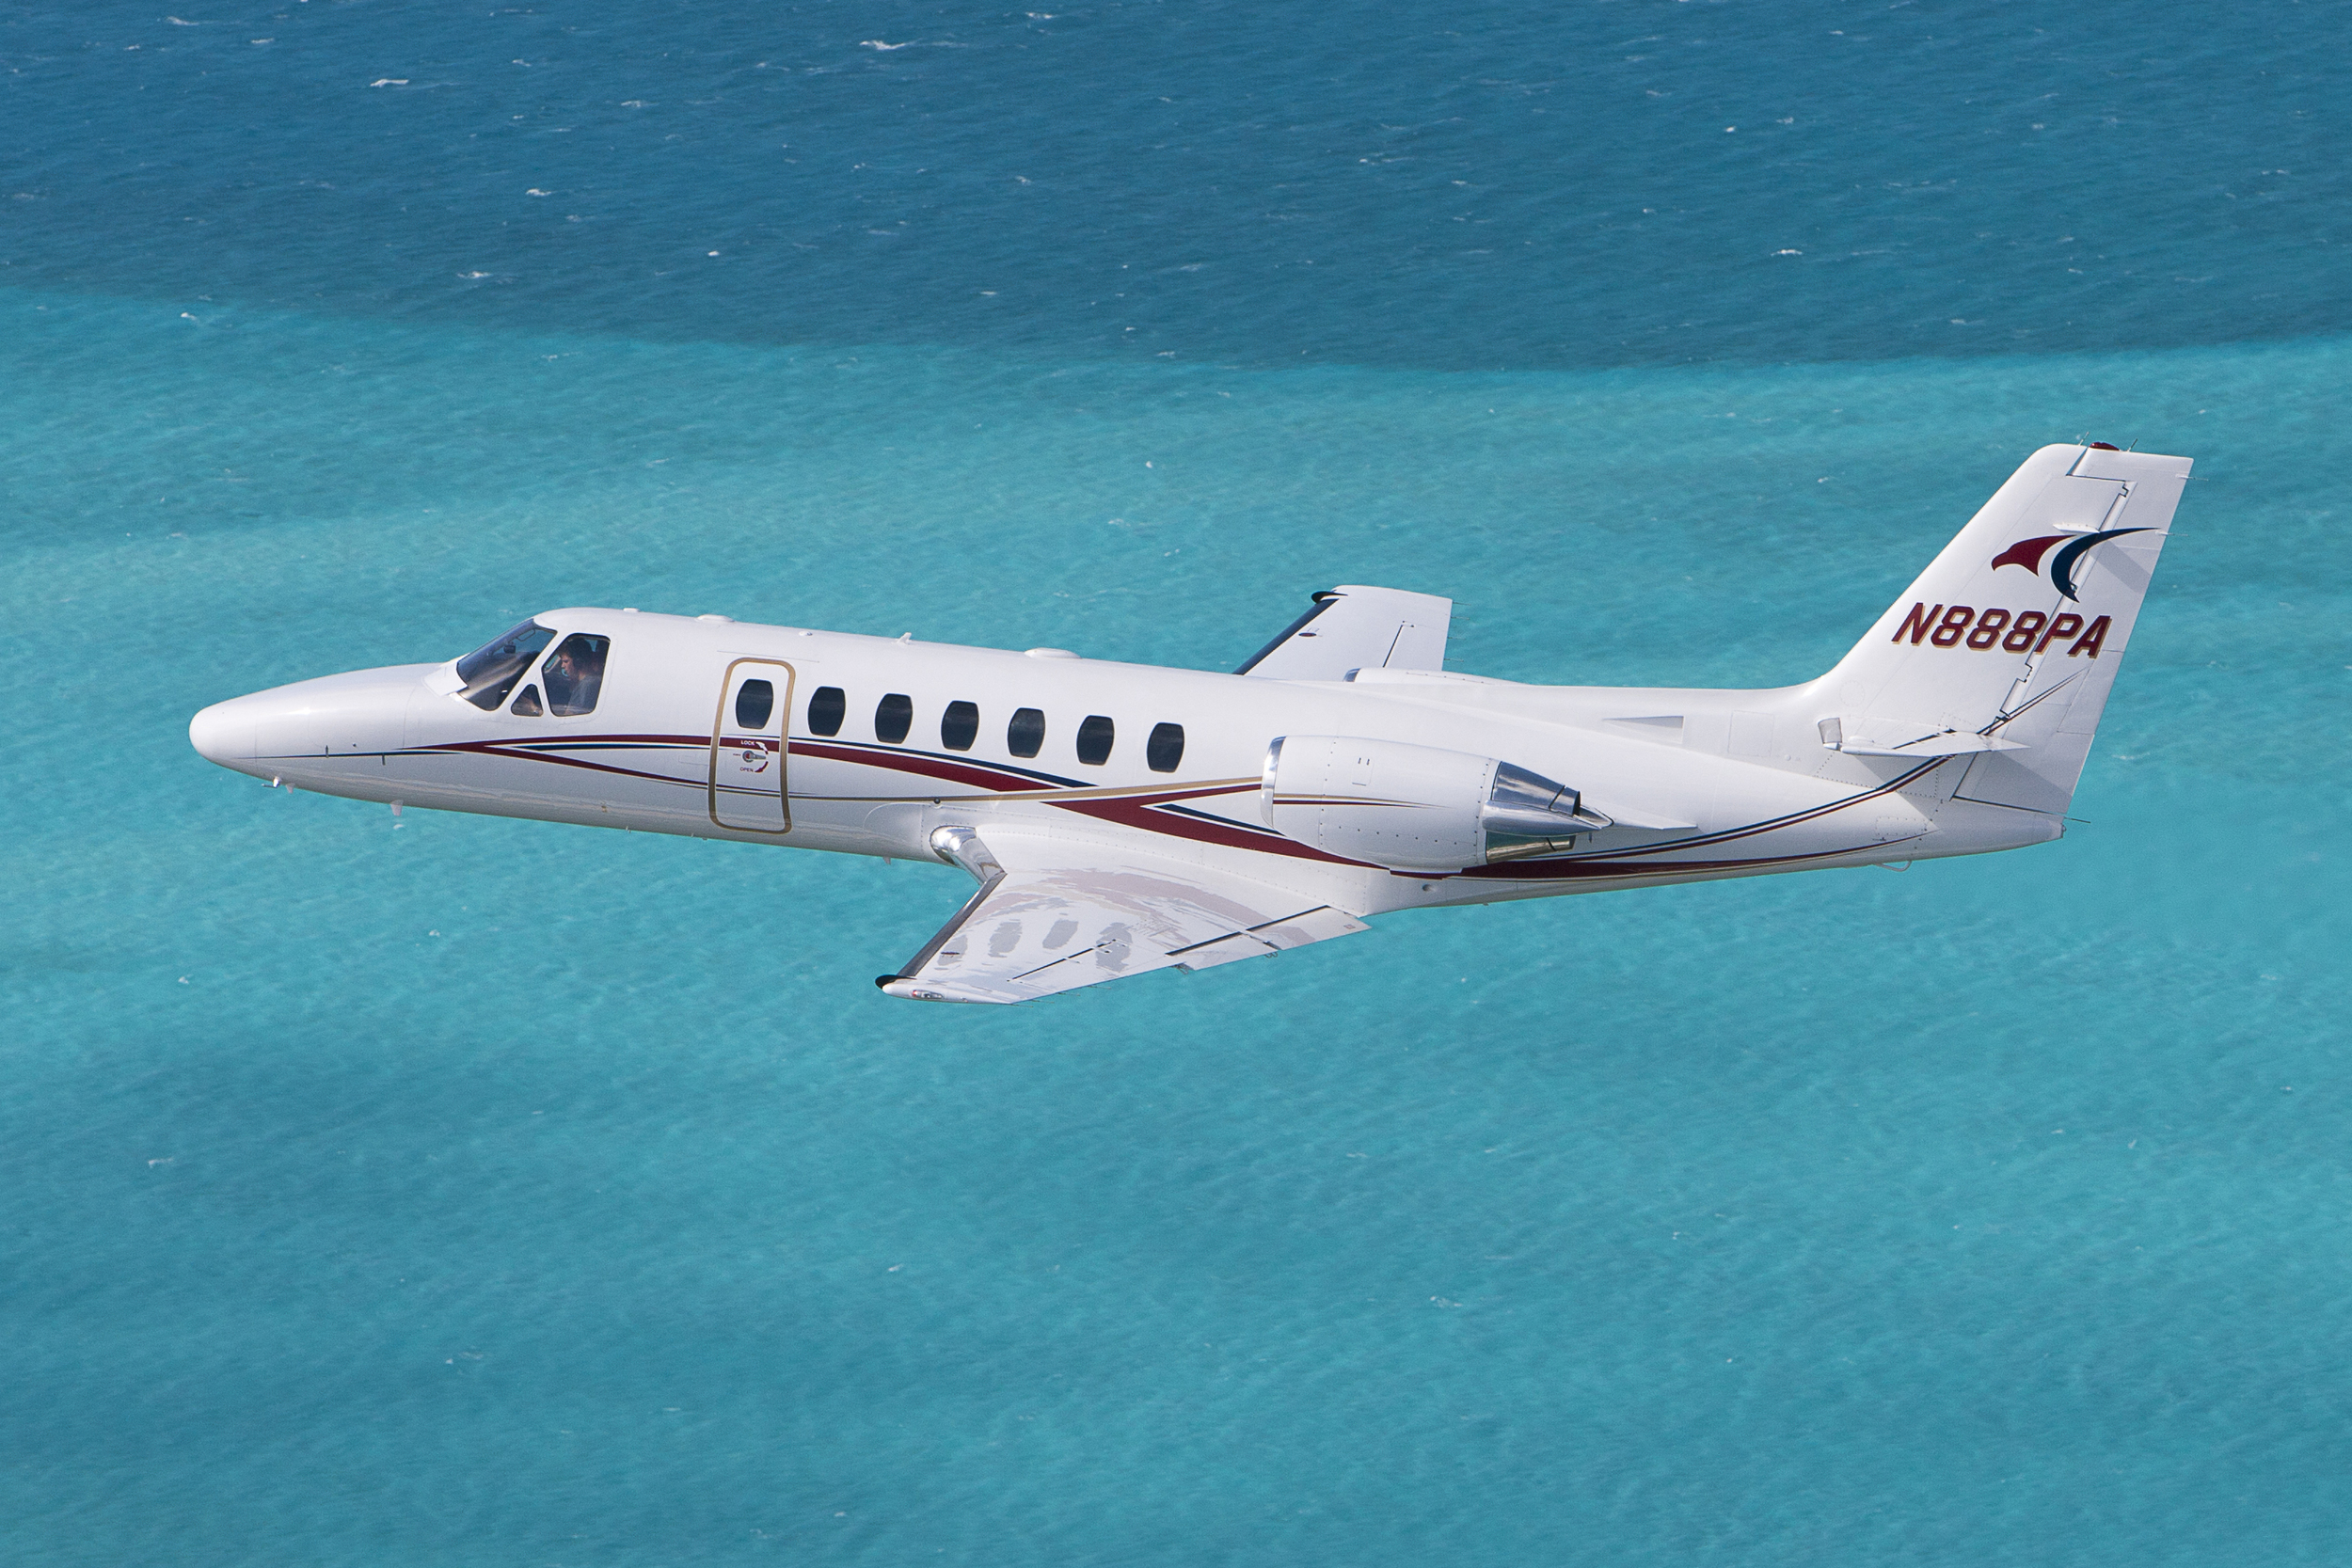 Need A Private Charter? we can make it happen.